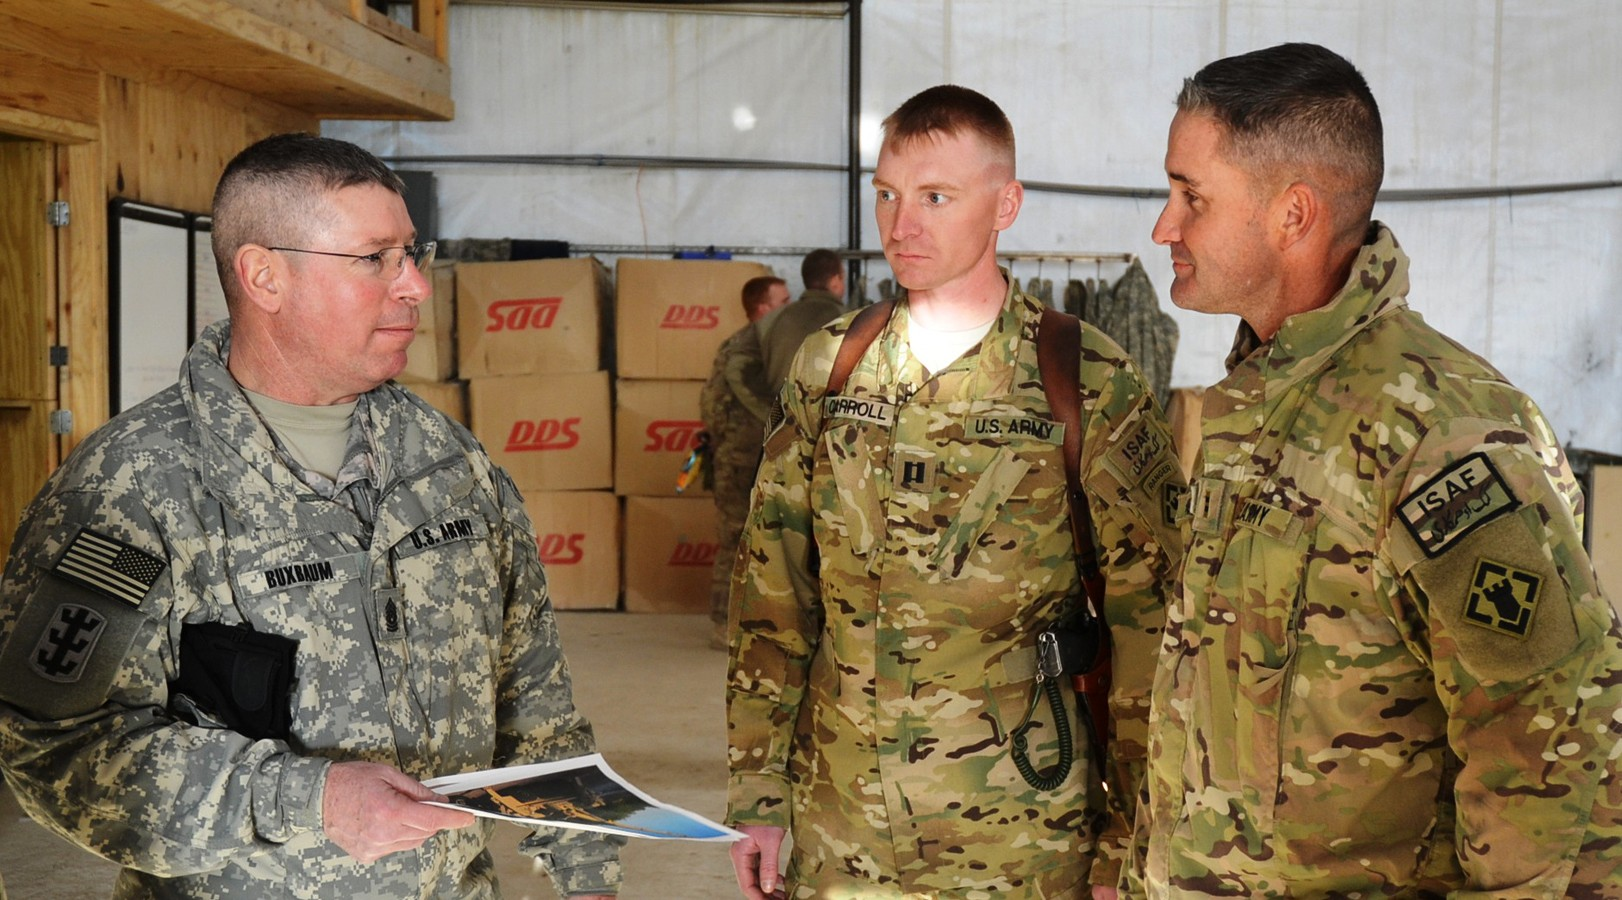 Corps of Engineers senior NCO visits Soldiers of 7th Battalion in ...